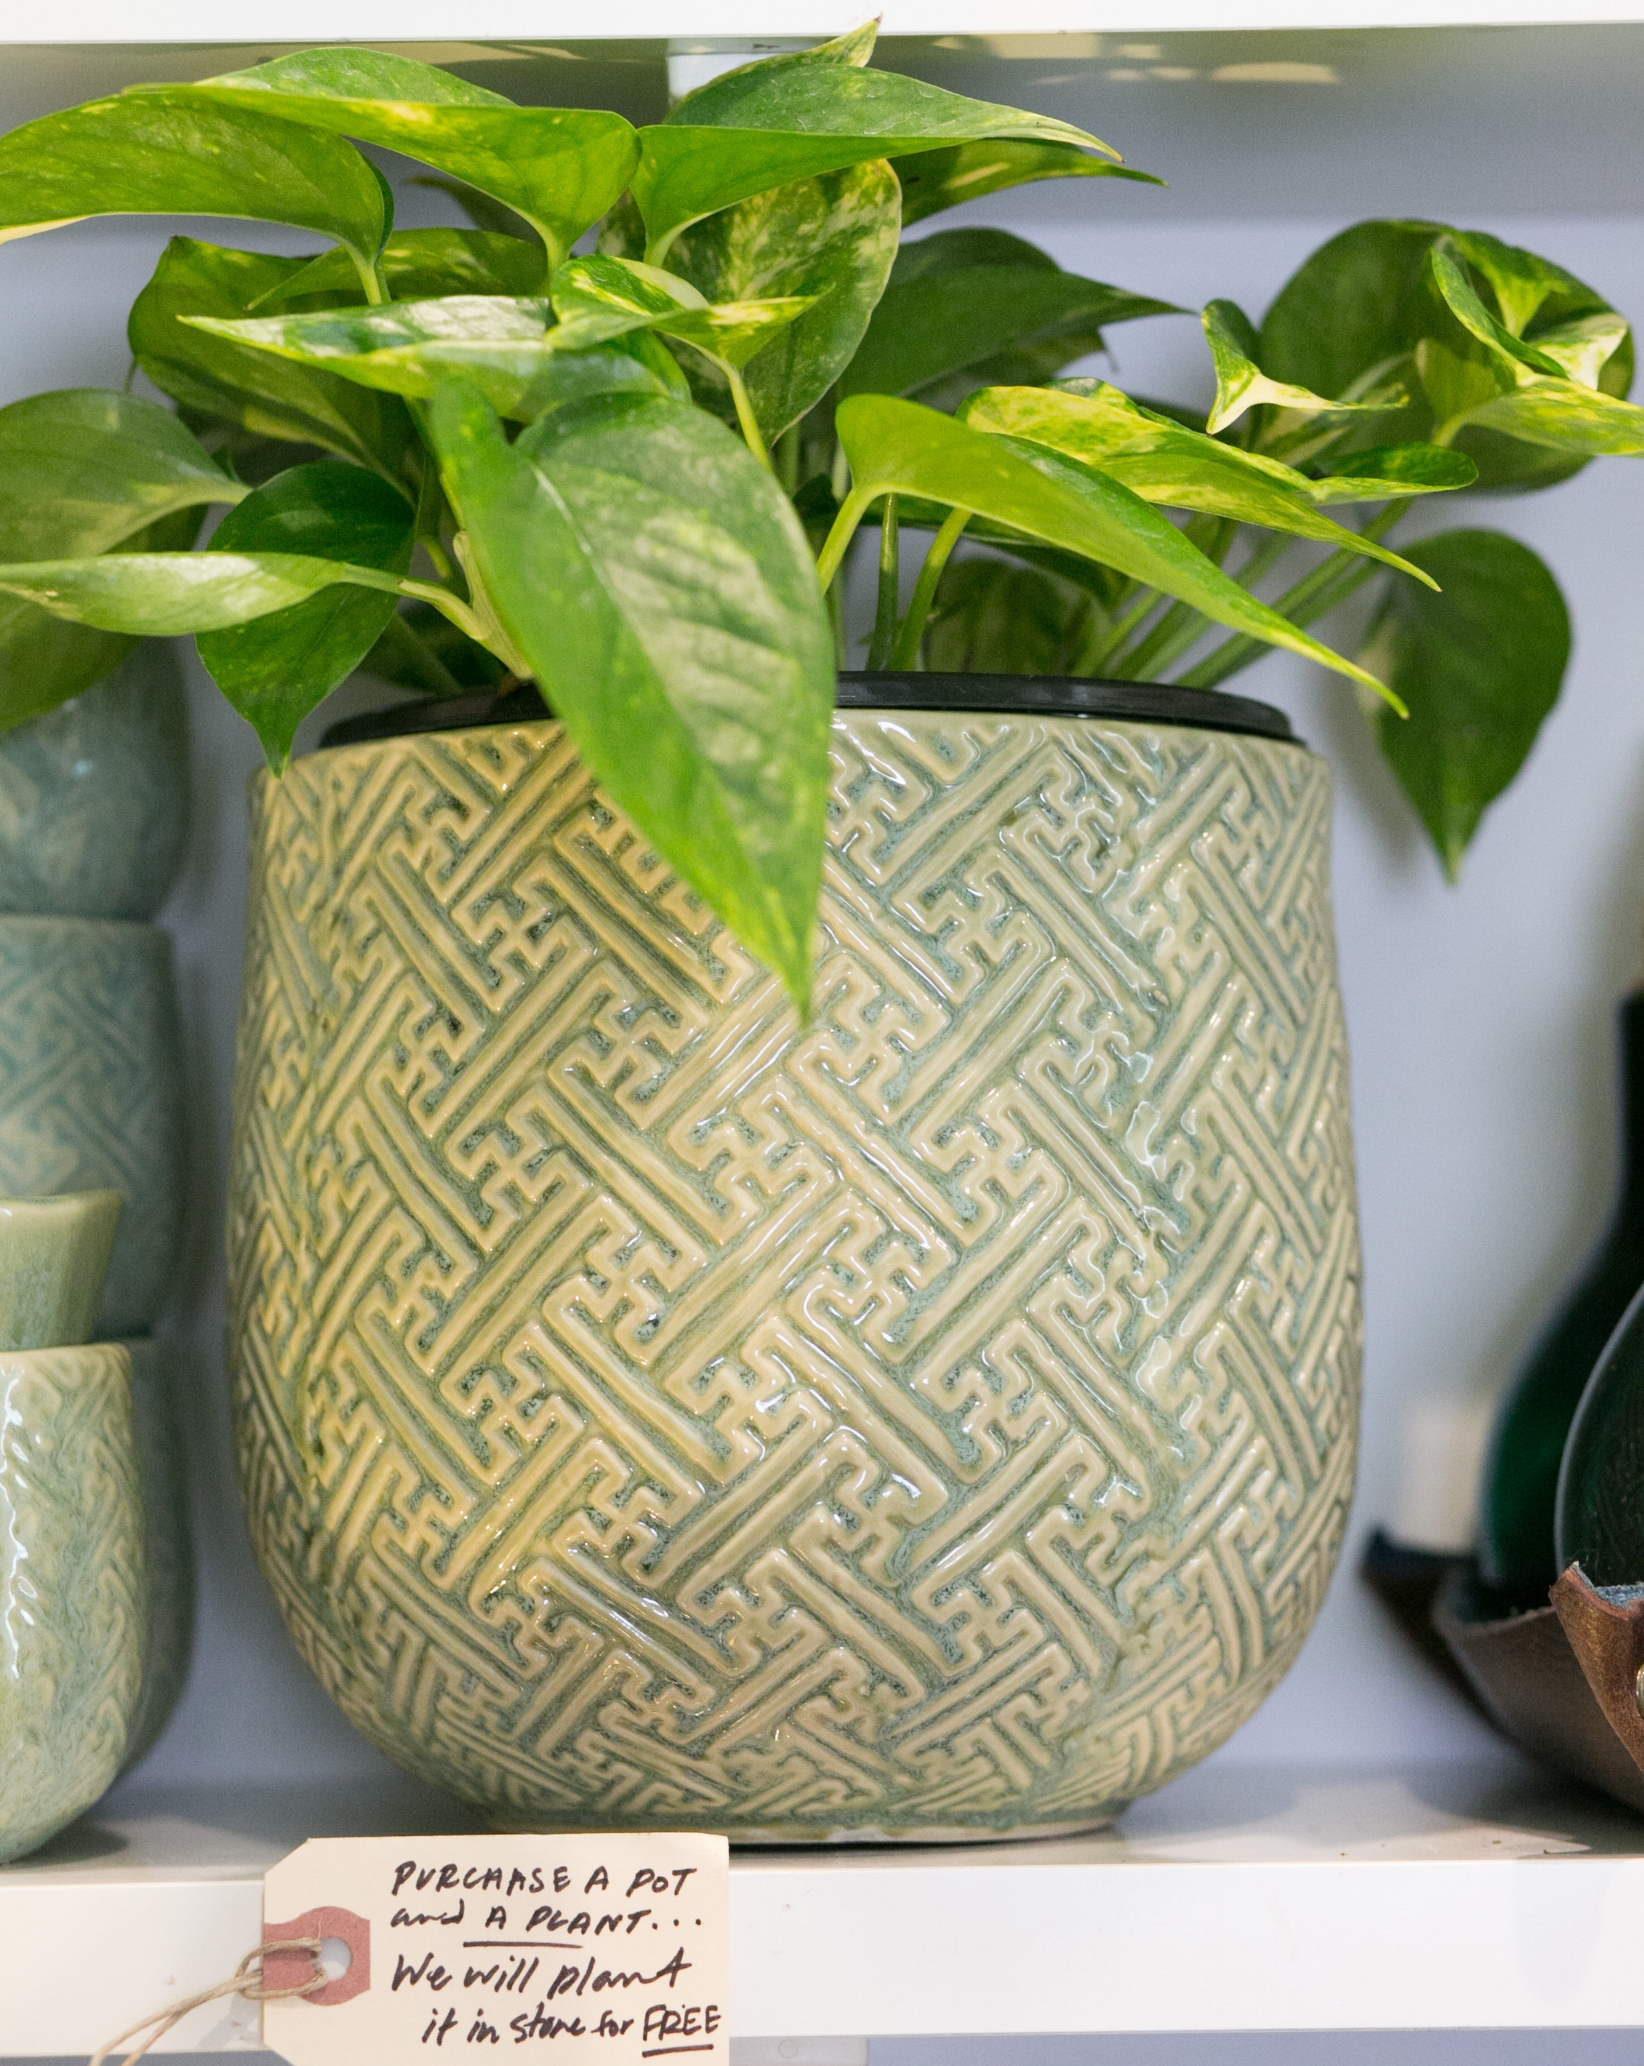 Pothos, or Devil's Ivy ( Epipremnum aureum ) is a great low maintenance, outdoor friendly plant. Treat yo'self to one and a new pot, and we'll plant it for you.